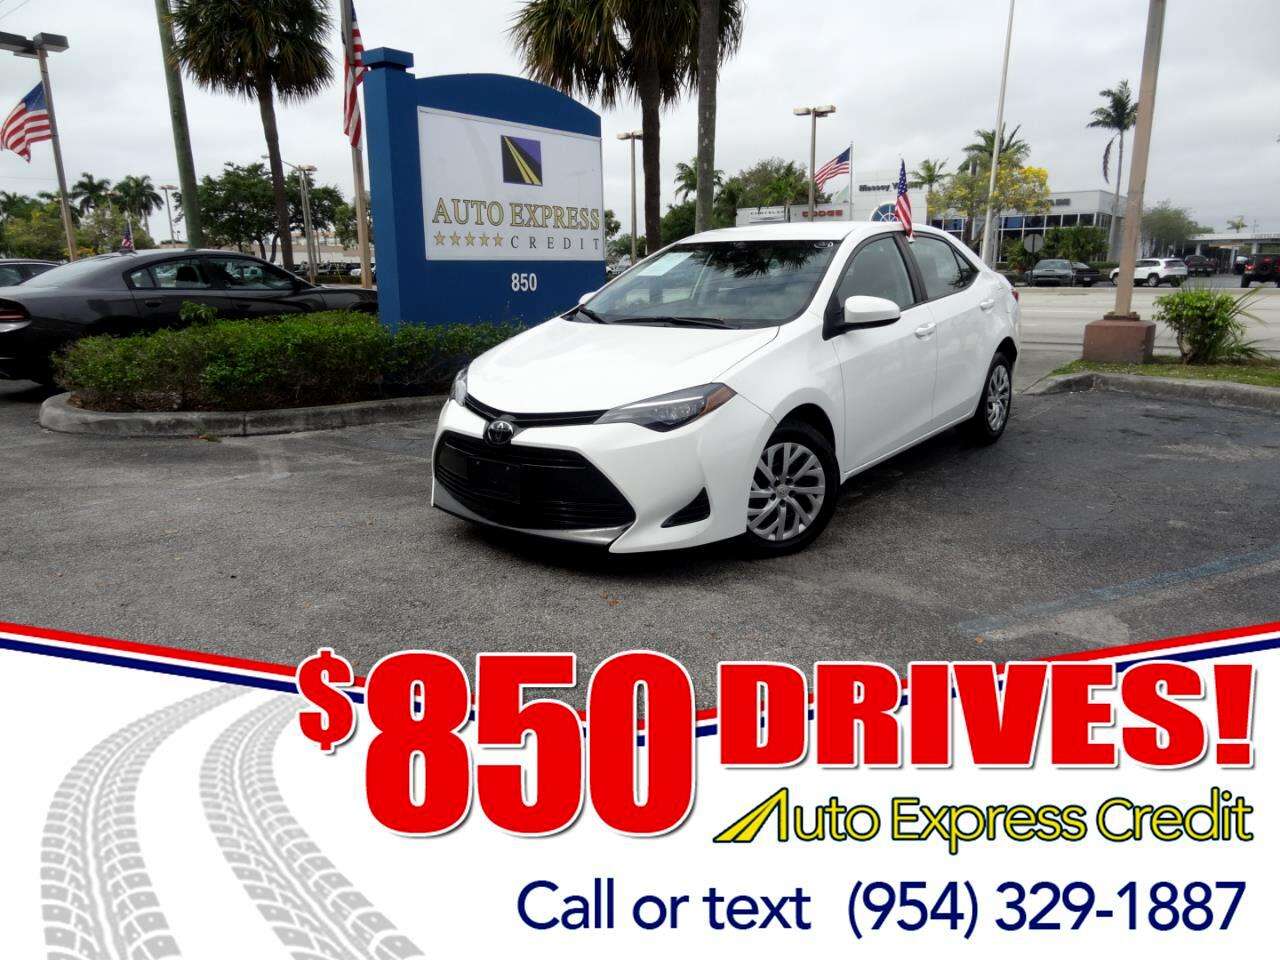 Used 2017 Toyota Corolla For Sale In Plantation FL 33317 Auto Express Credit